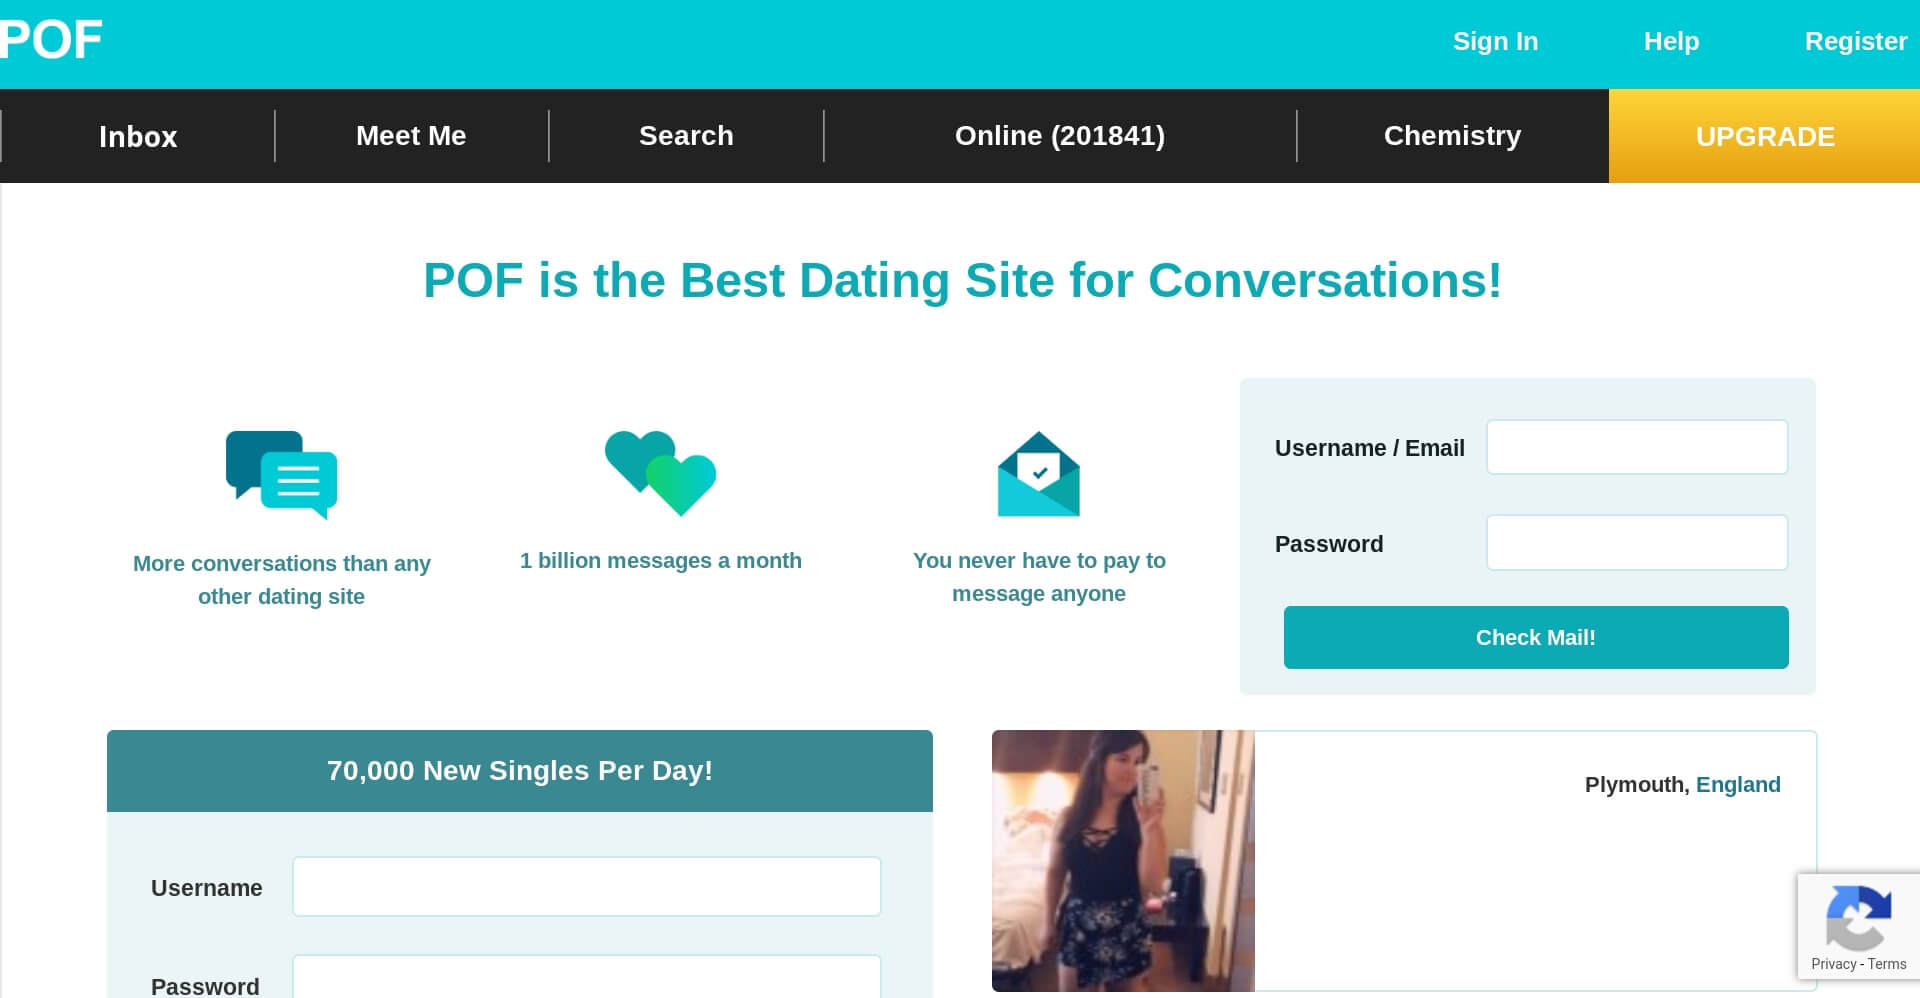 Fish dating.co.uk weekend dating.com